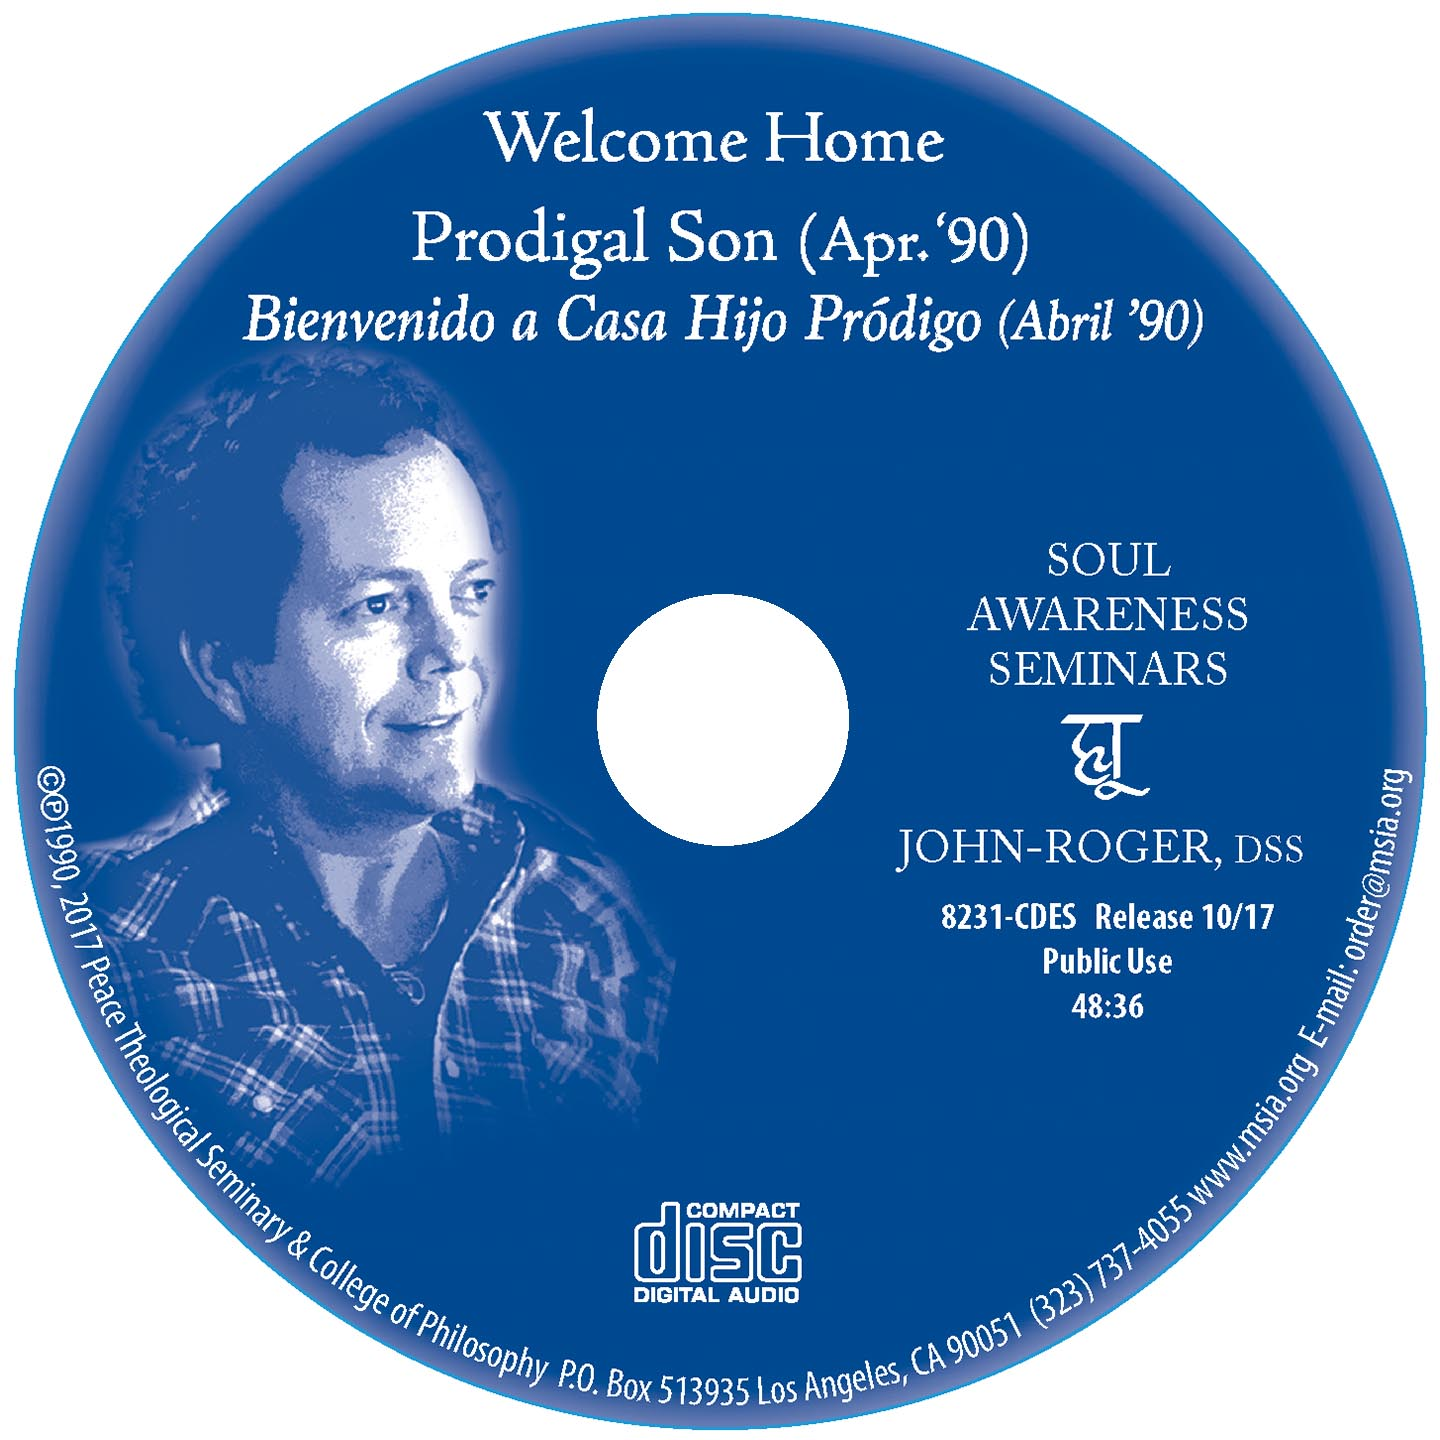 Welcome Home Prodigal Son MP3